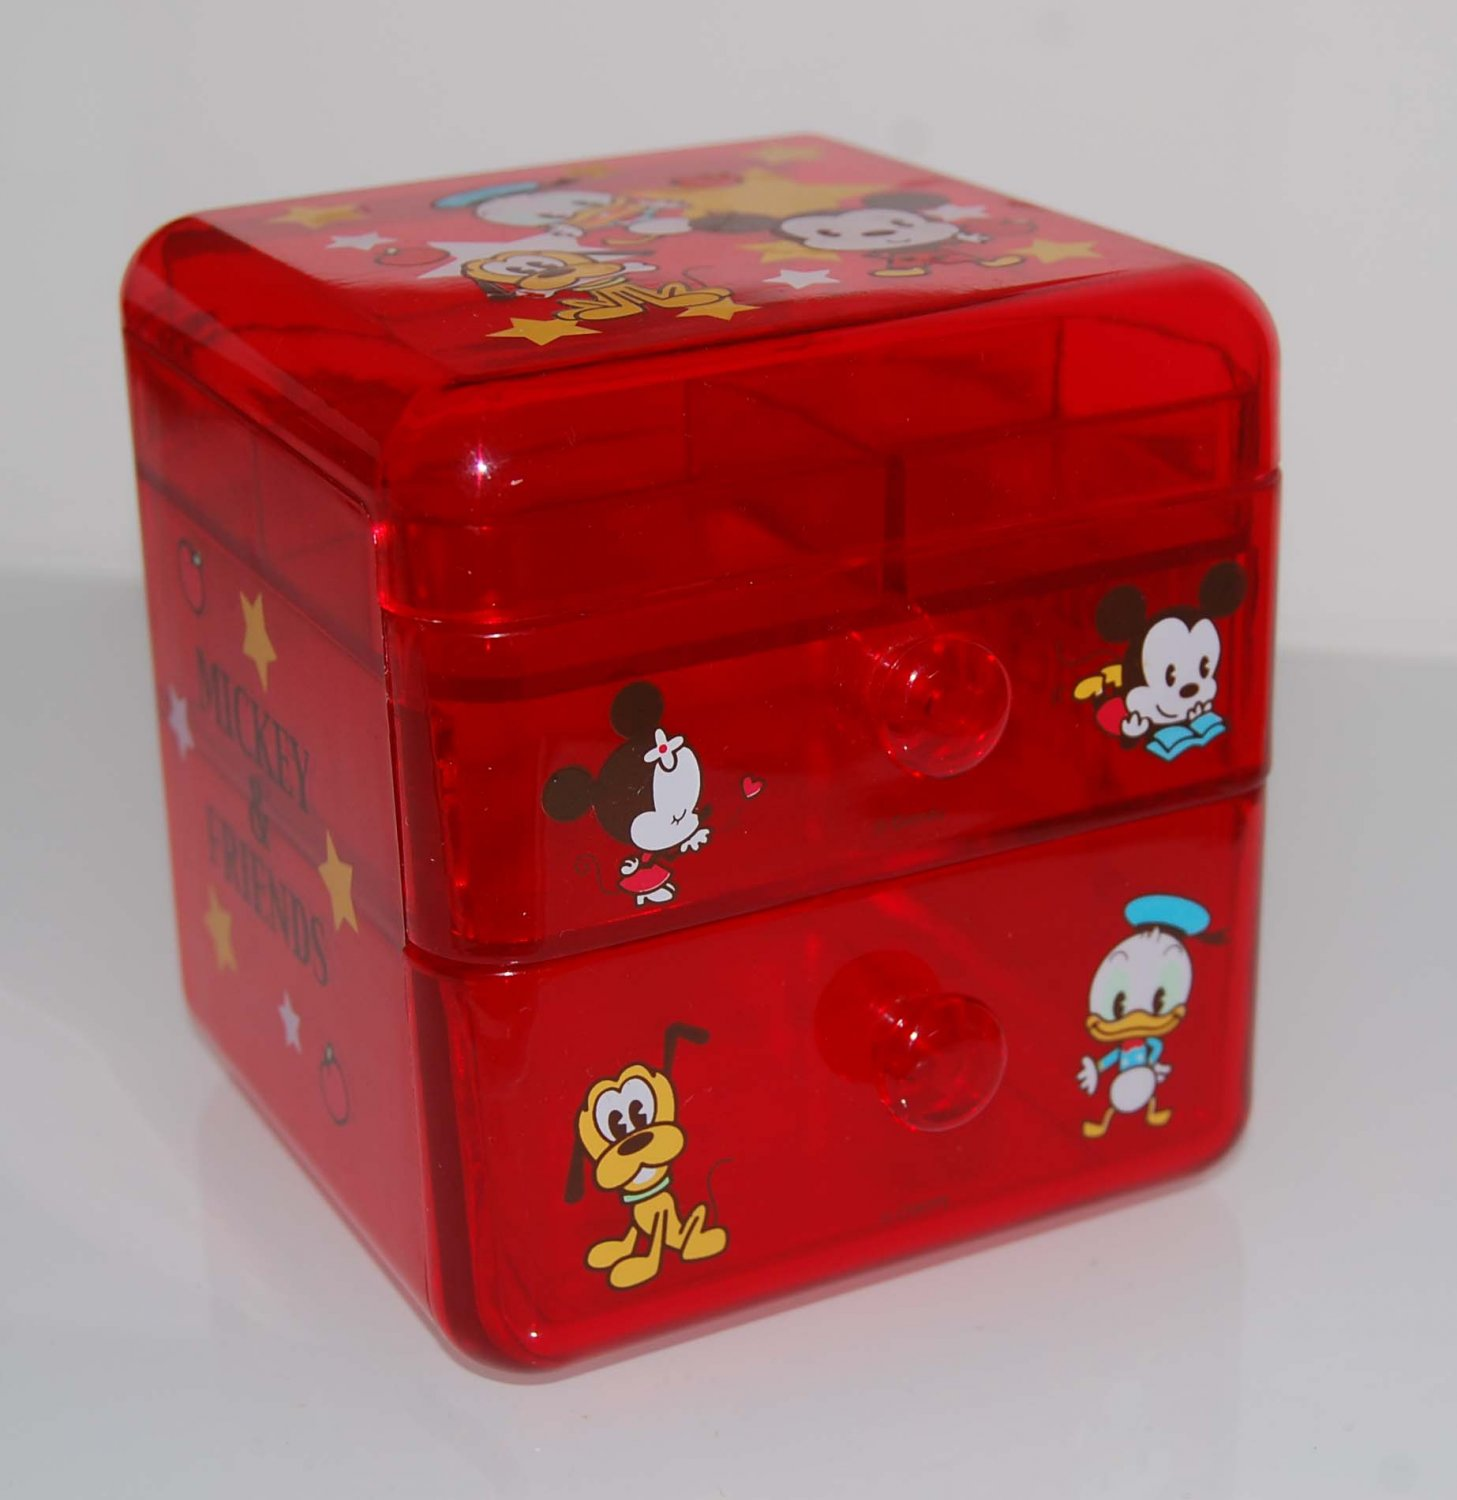 USED Disney Mickey Mouse Minnie Donald Duck Red Semi Transparent Drawer Box Container